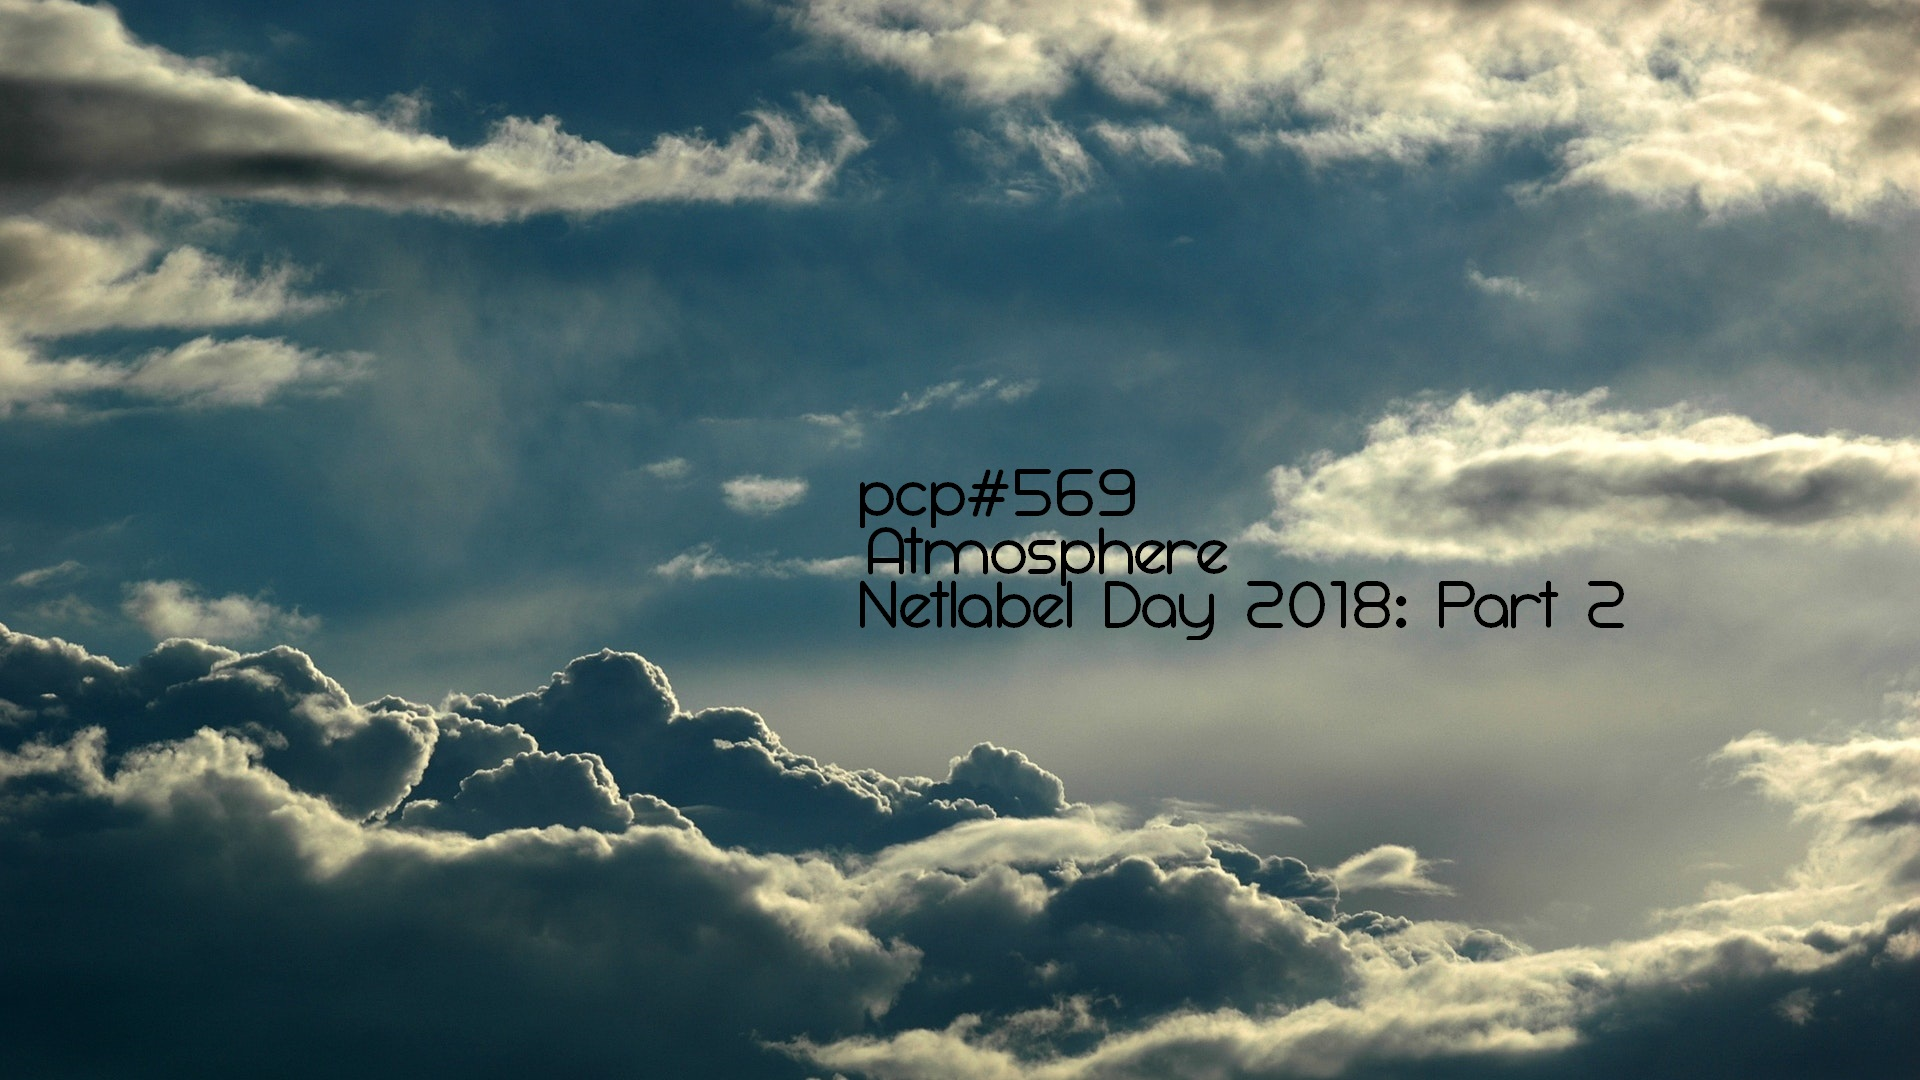 PCP#569... Atmosphere. Netlabel Day 2018: Part 2....